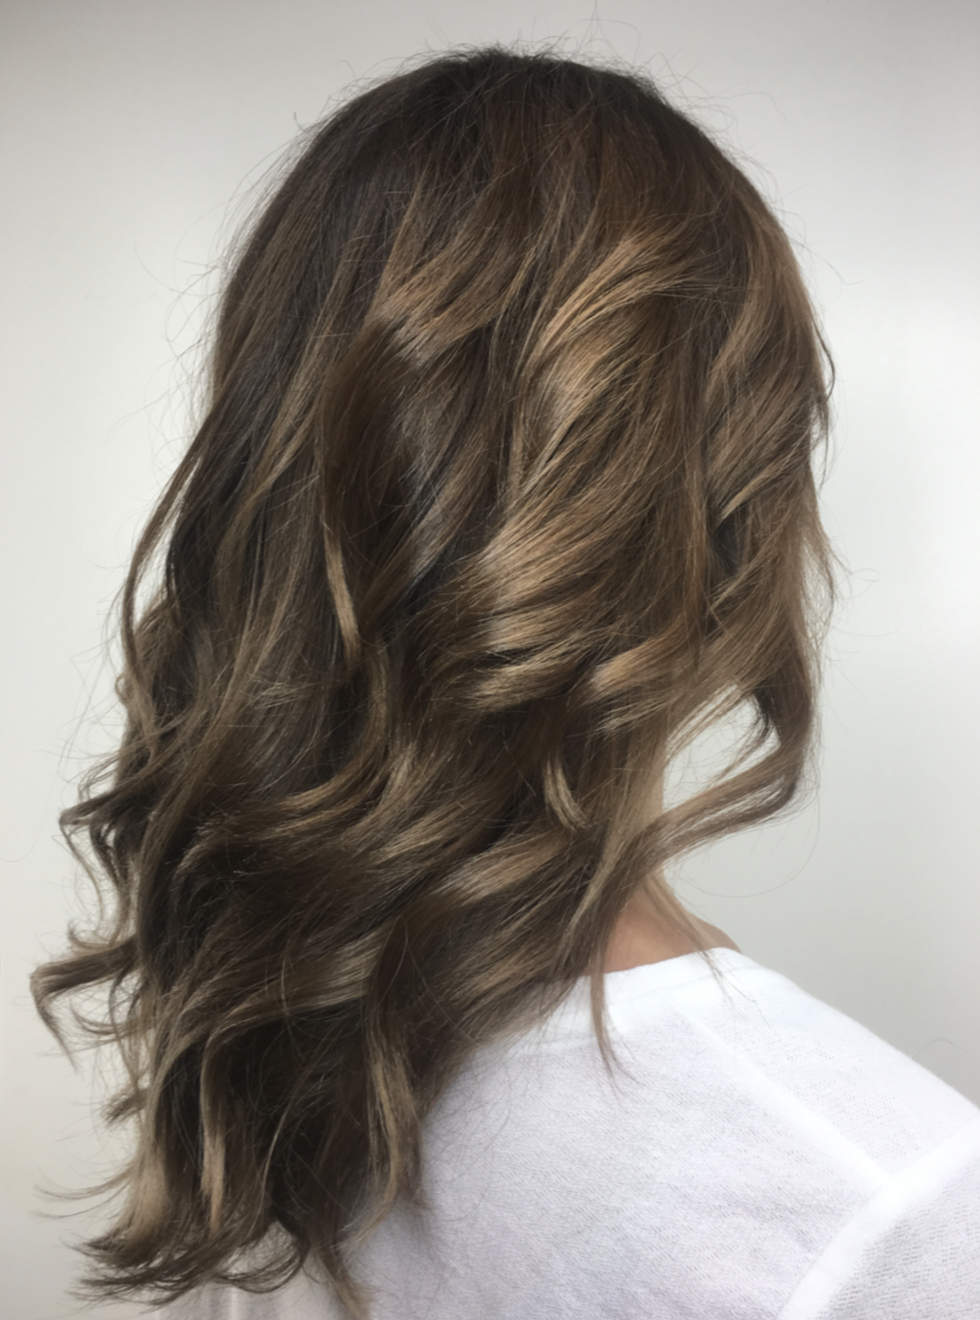 The Tousled Brunette, by Maggie Leonhardt